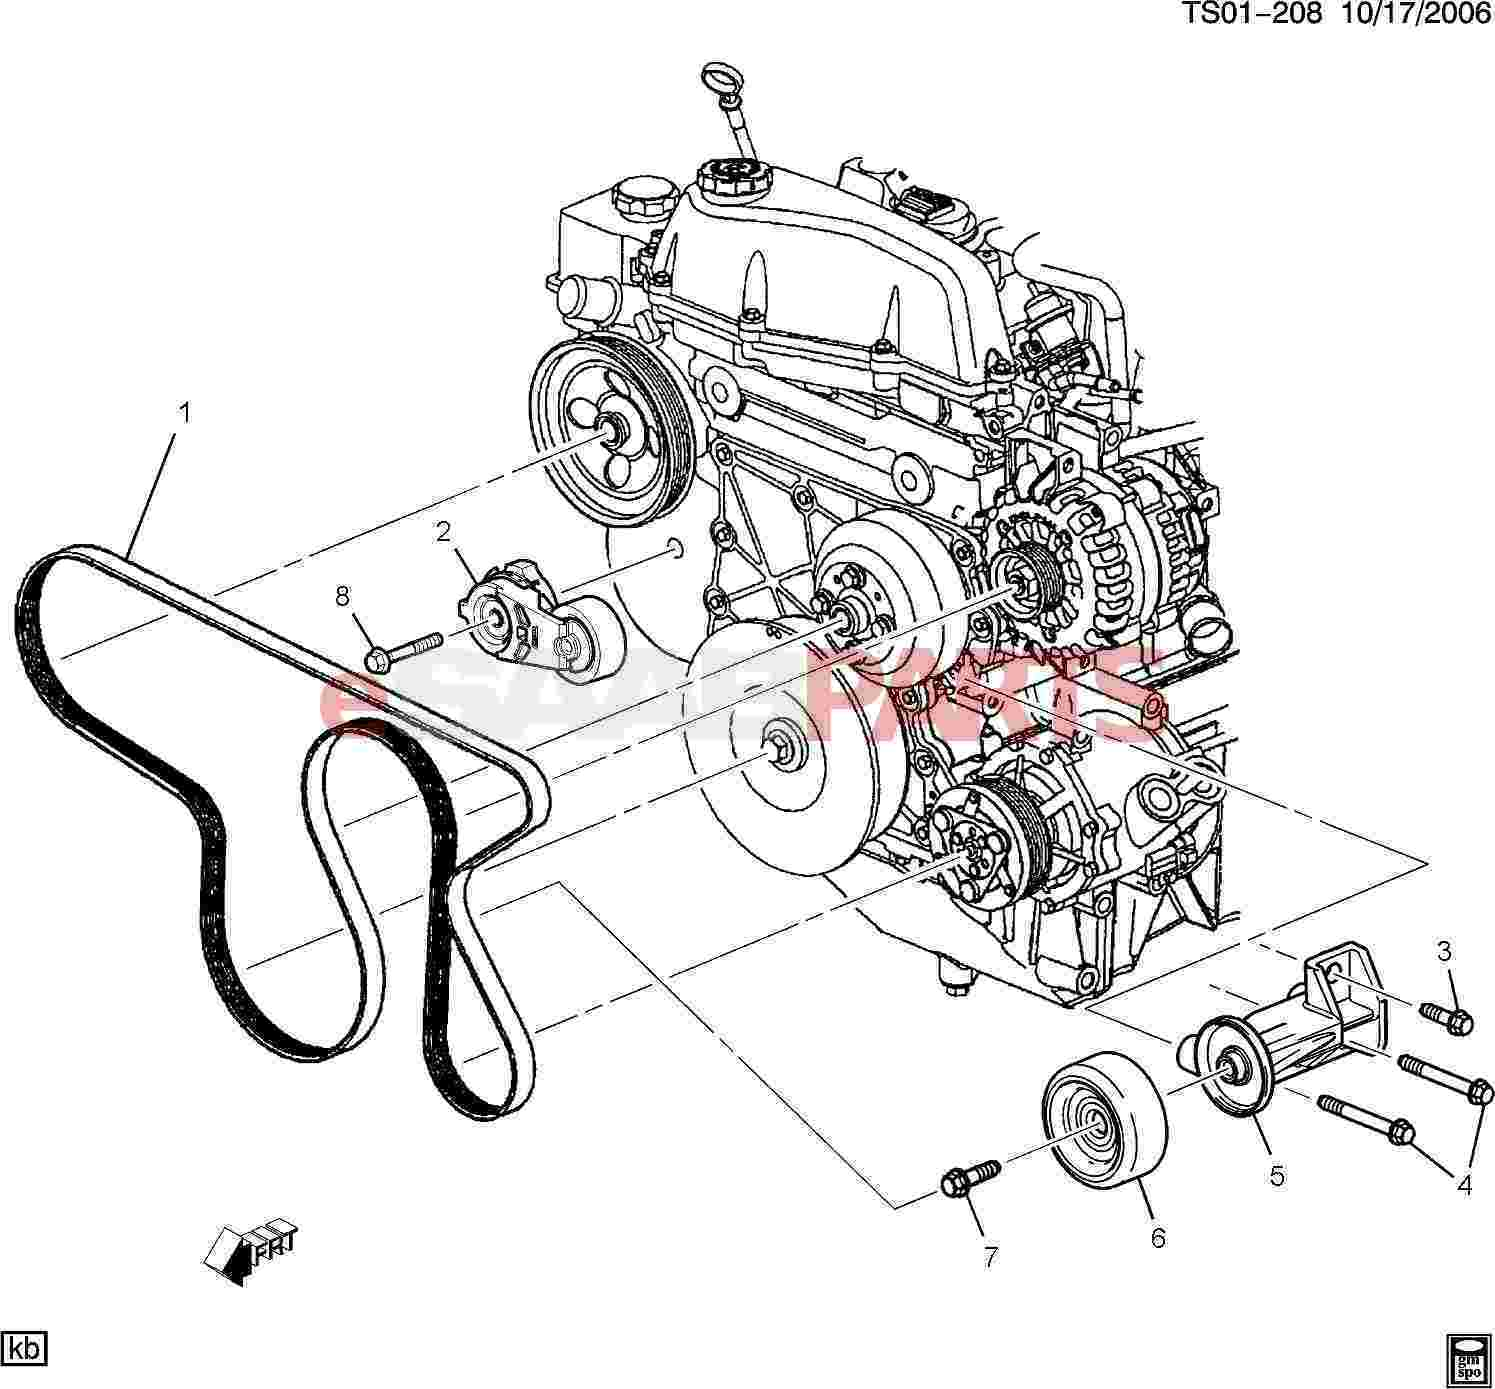 2006 trailblazer engine diagram - cars wiring diagram  cars wiring diagram